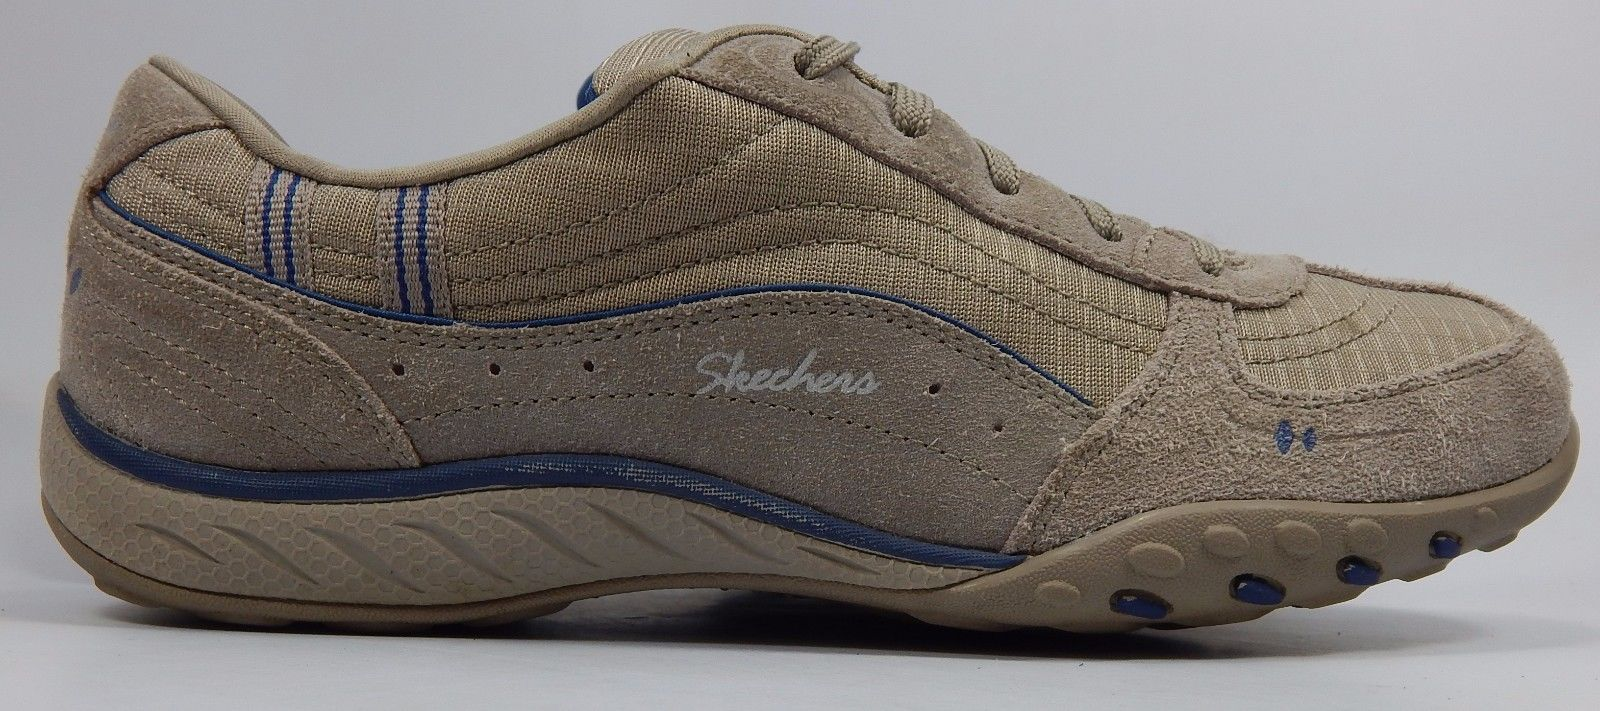 Skechers Relaxed Fit Breathe Easy Women's Athletic Shoes Size US 8 M (B) EU 38